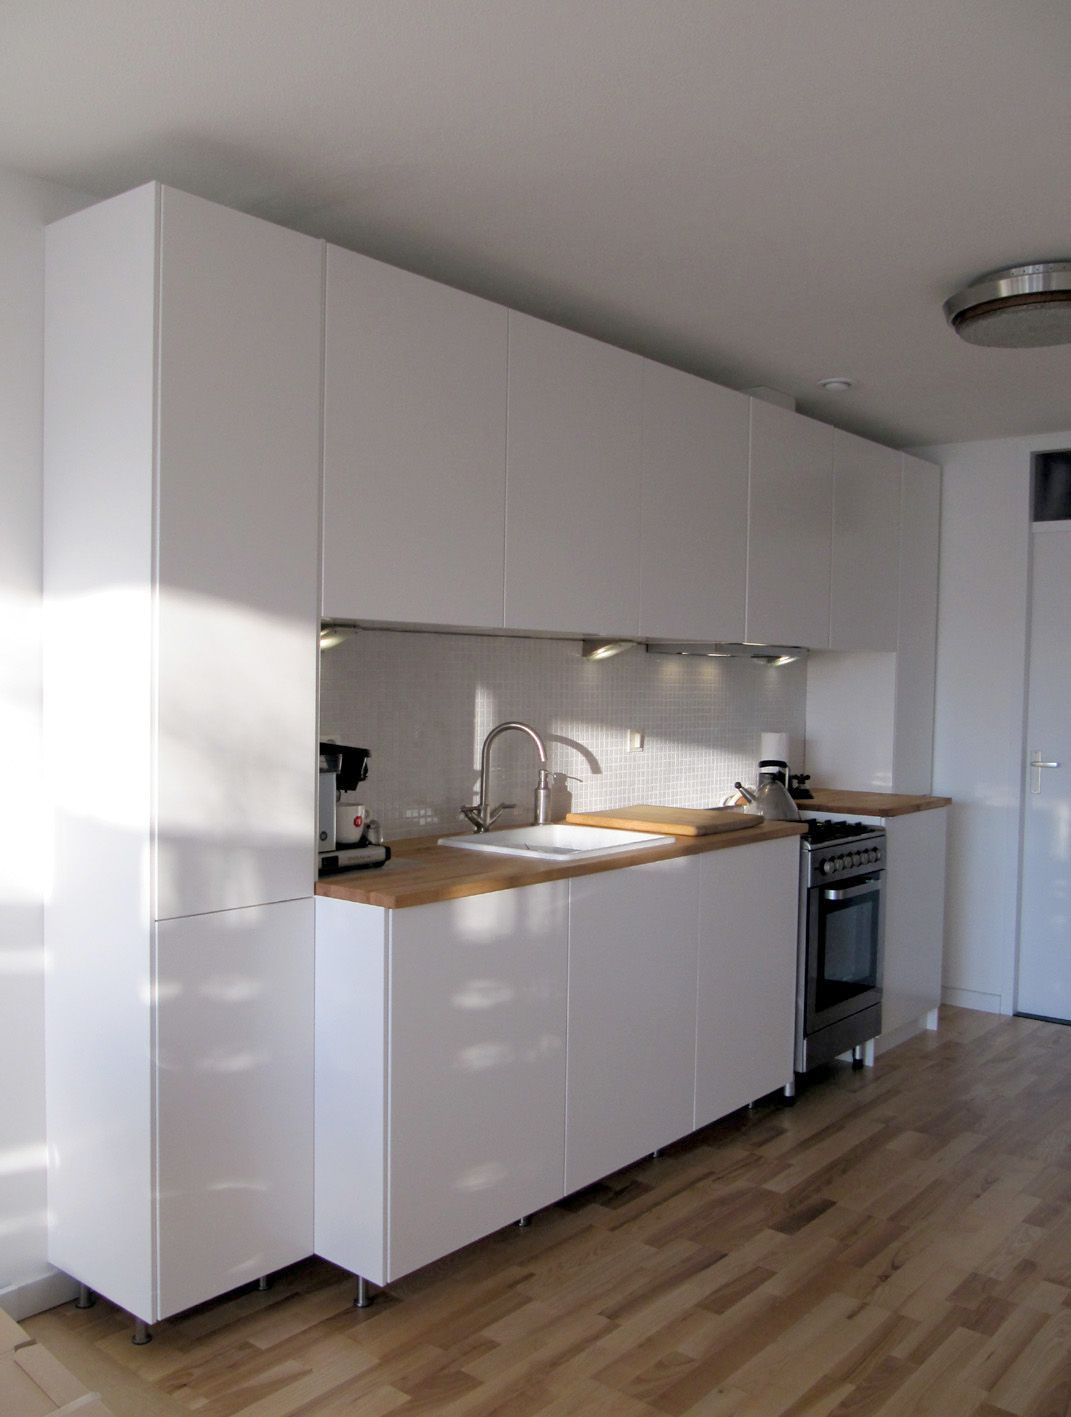 scandinavian interior design; ikea kitchen with veddinge doors in an